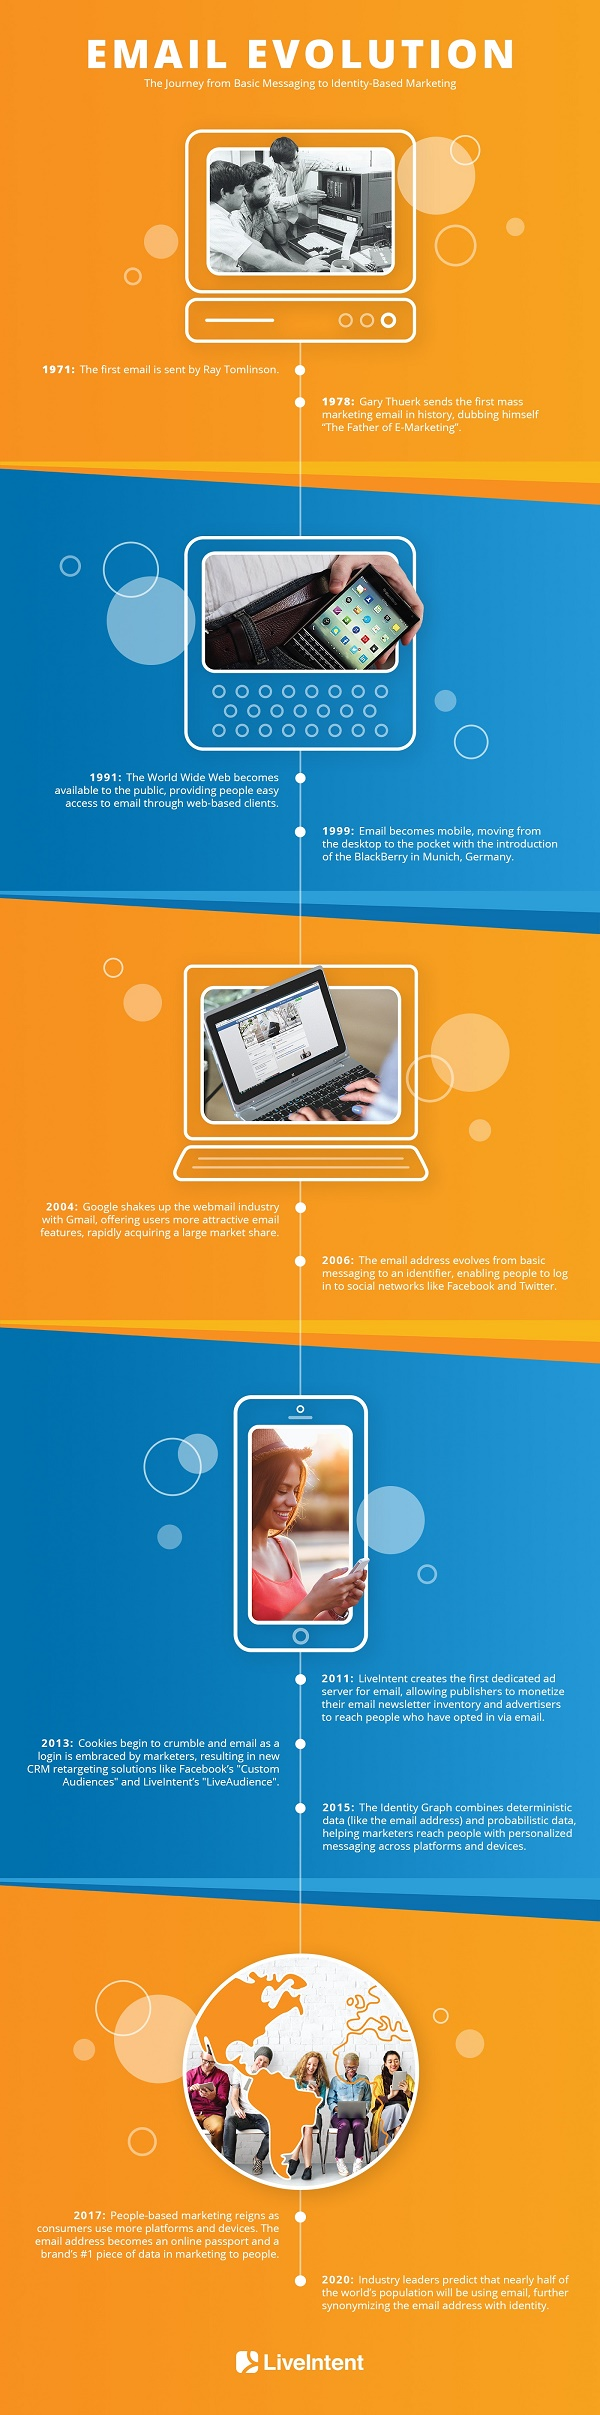 This infographic demonstrates just how fast email has developed.